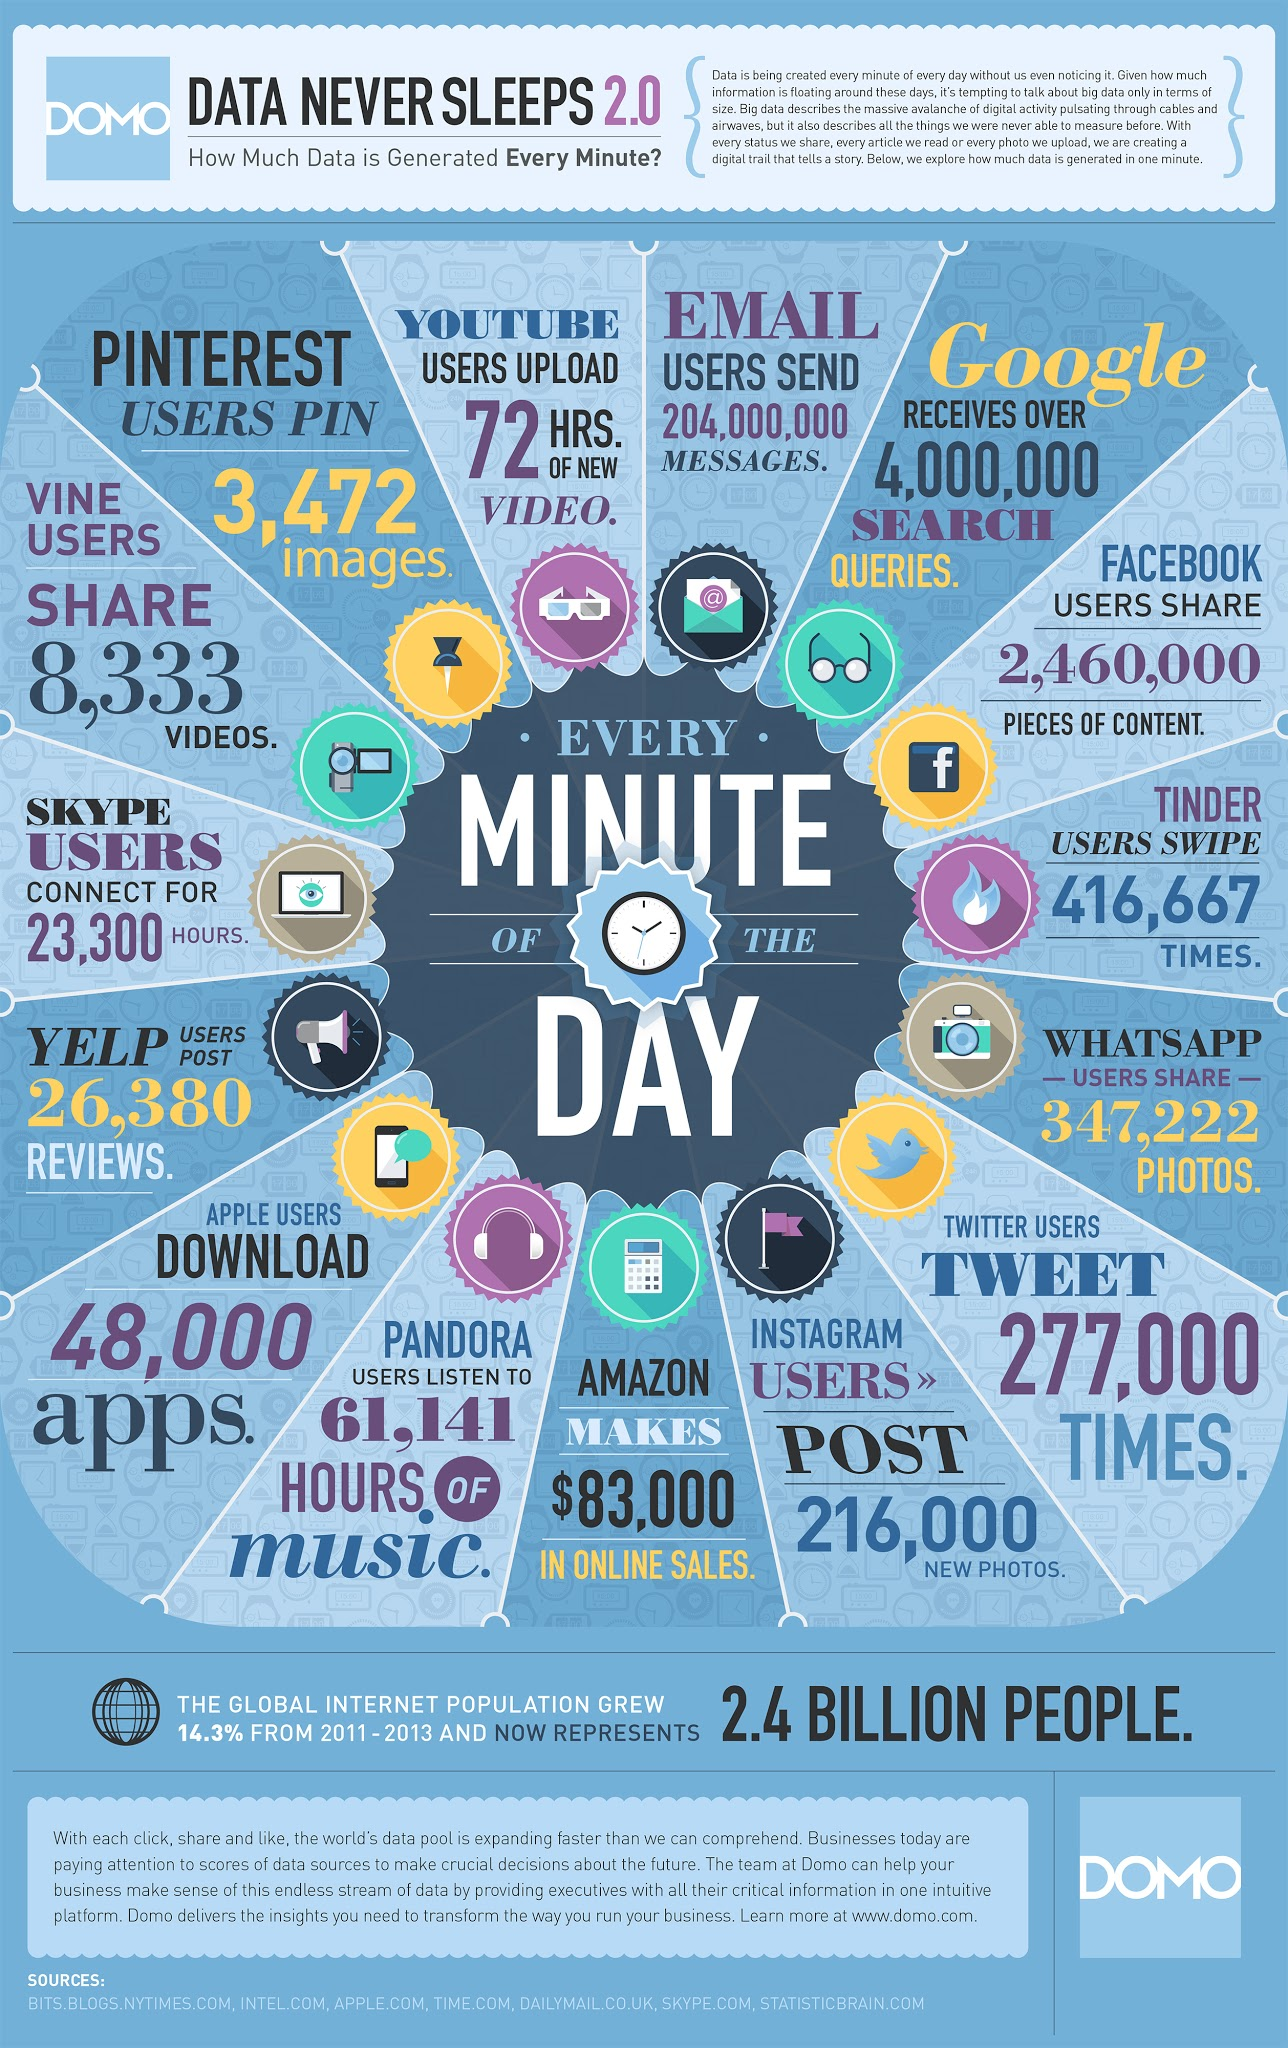 Data-Never-Sleeps-60-seconds-on-social-media-infographic